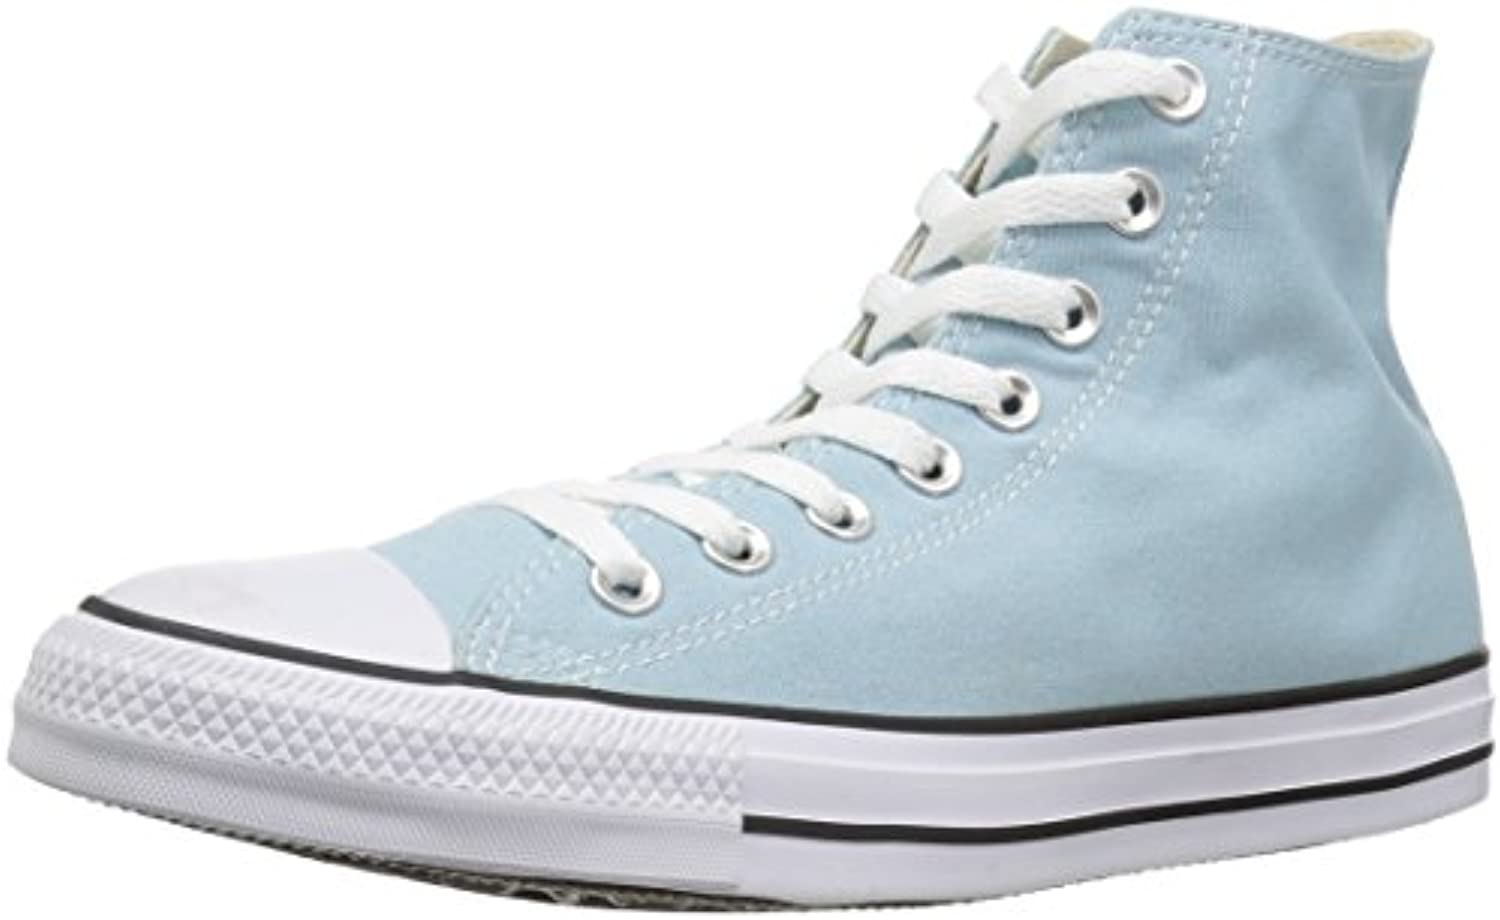 Converse Converse159620F - Scout XT Adulto Adulto Adulto Unisex | Outlet Store Online